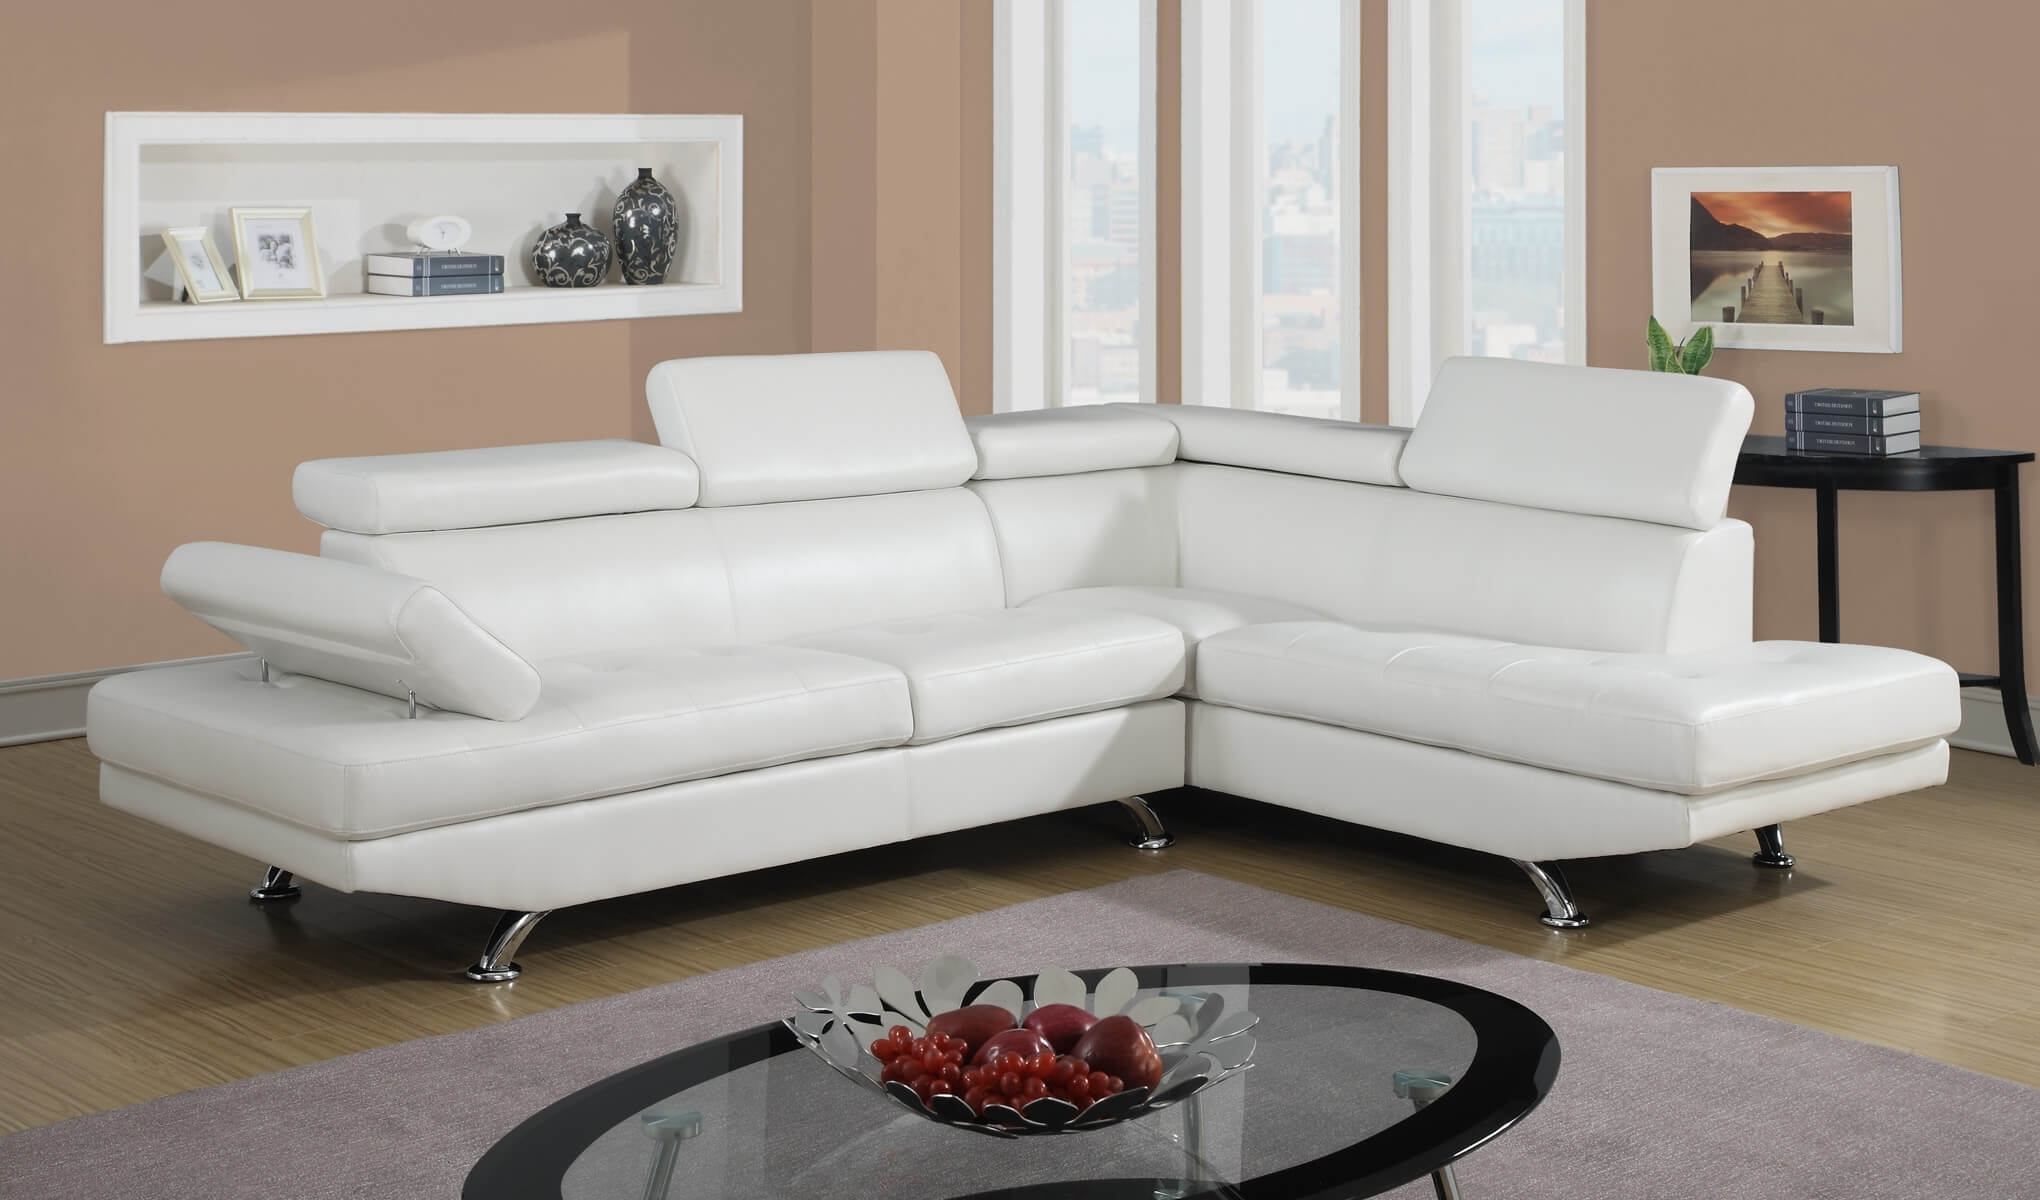 10 top canada sale sectional sofas sofa ideas. Black Bedroom Furniture Sets. Home Design Ideas